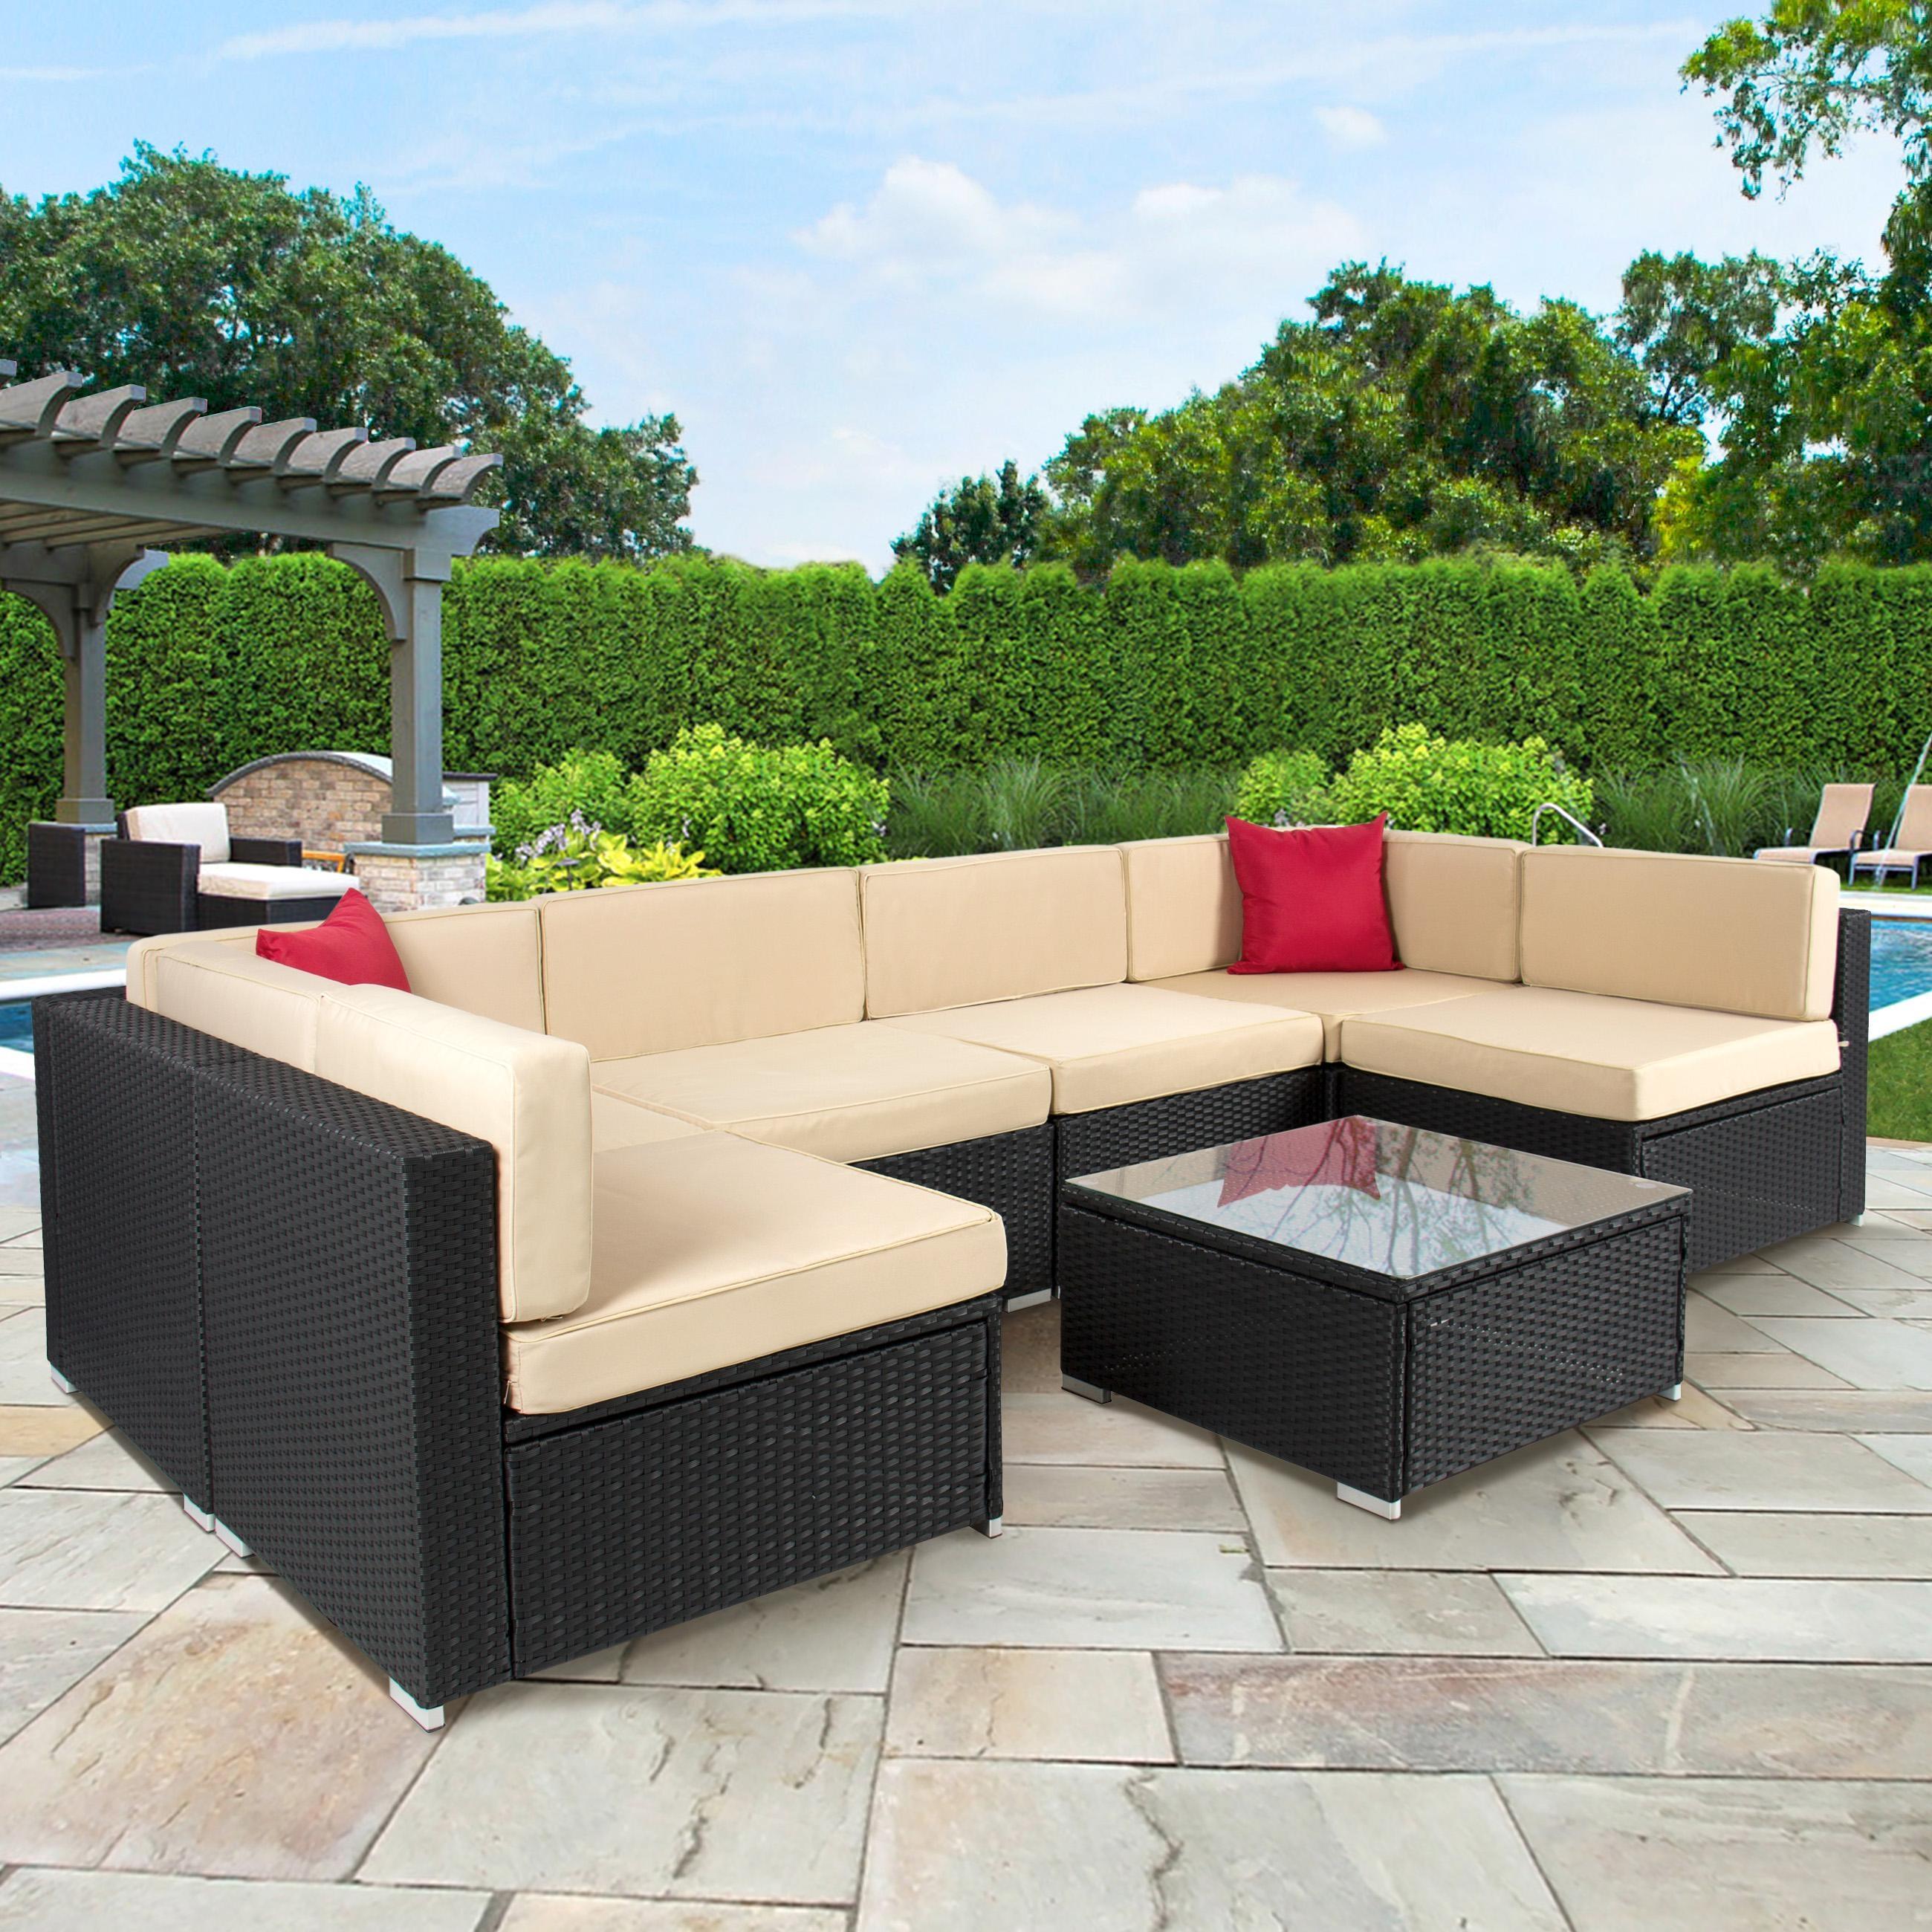 Best Choice Products 4Pc Wicker Outdoor Patio Furniture Set With Outdoor Sofas And Chairs (Image 4 of 20)